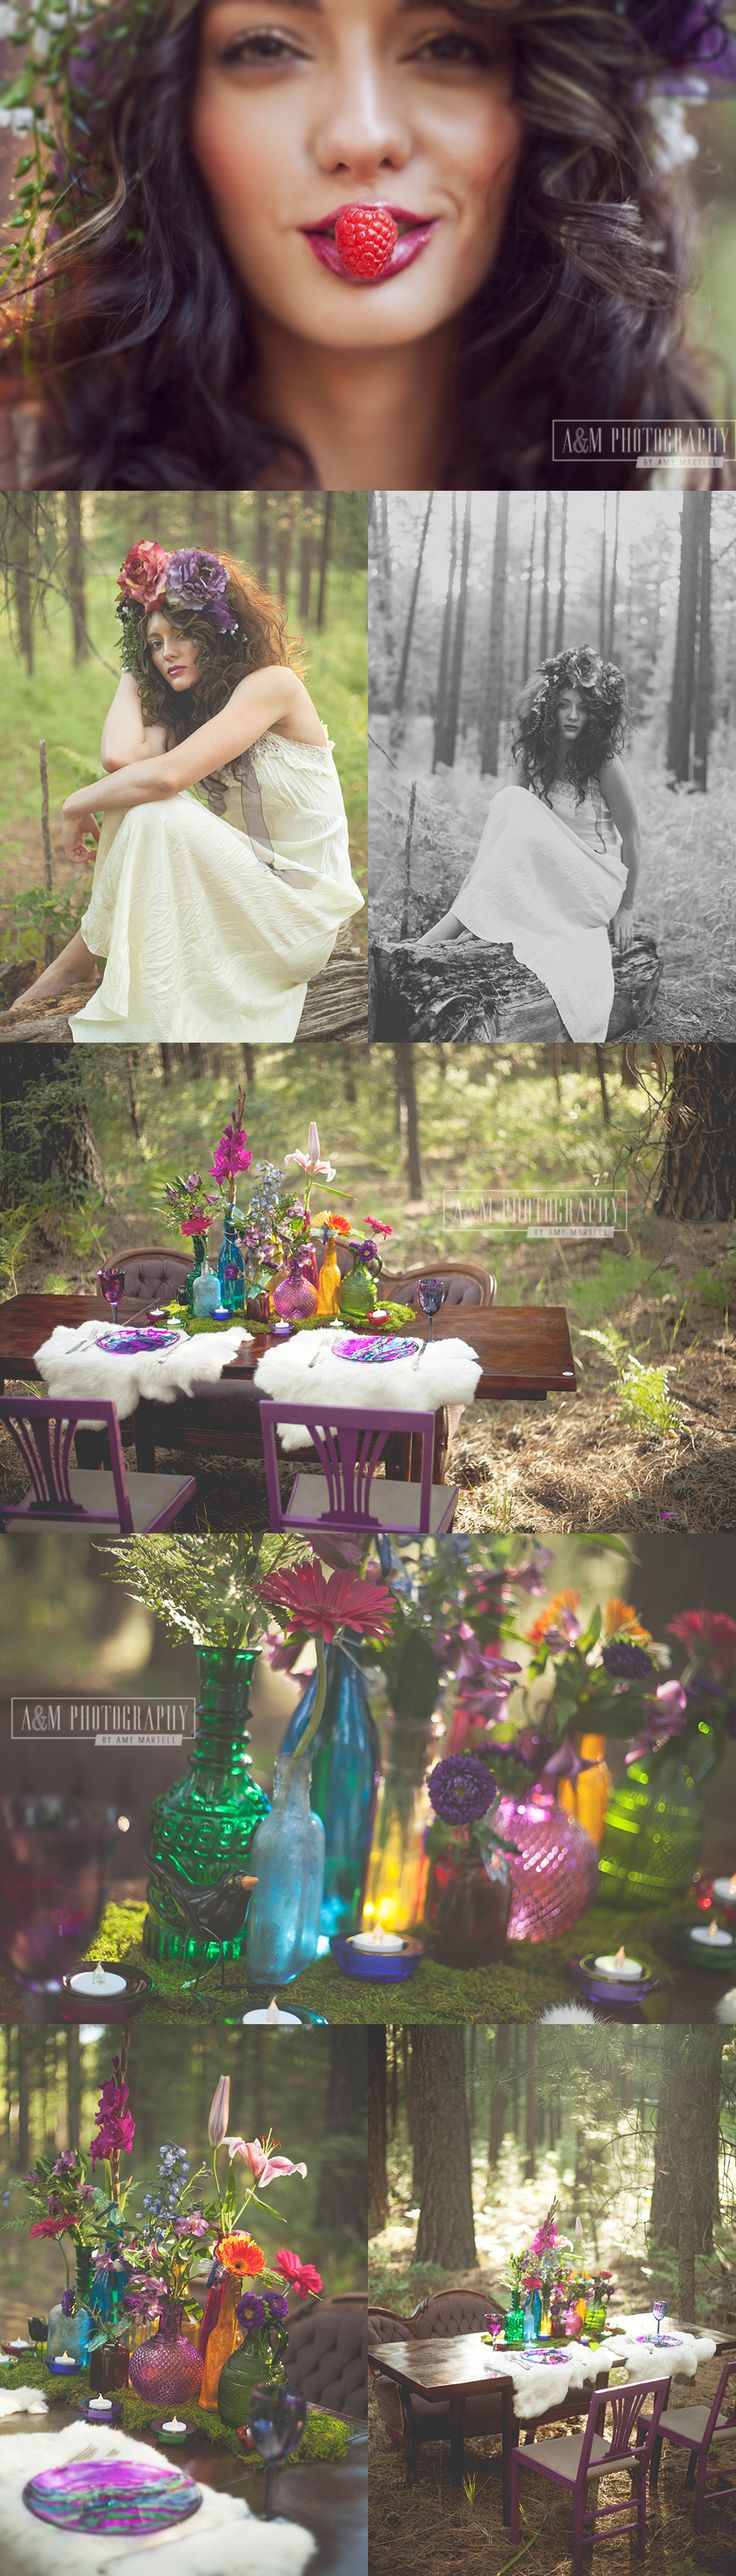 Amazing styled shoot. Jewel tone wedding inspiration.